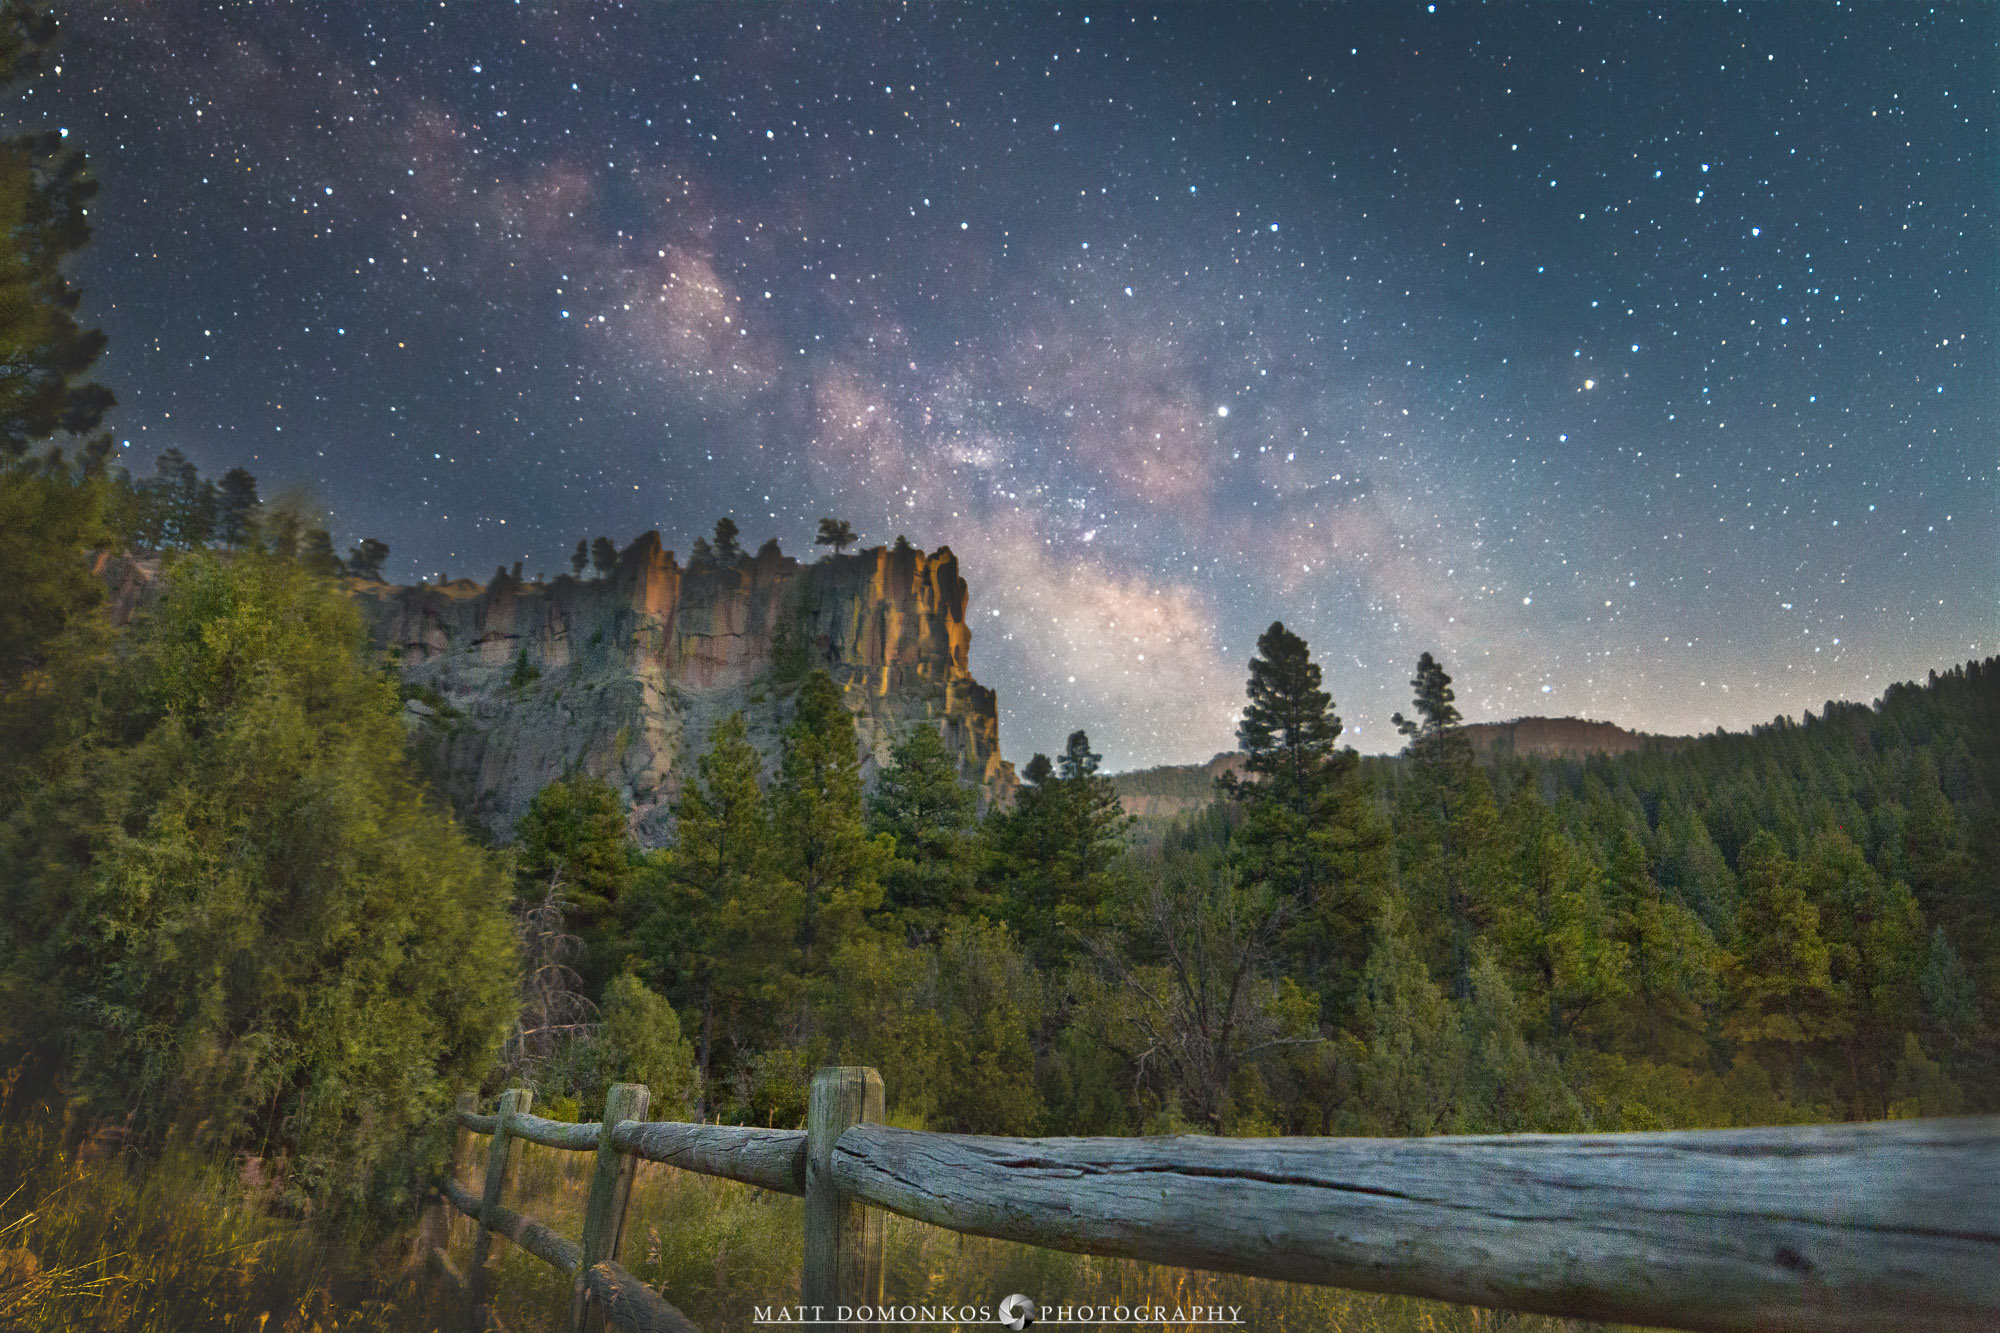 Originally shot in 2017, I reworked this with my current workflow, creating an image with better clarity throughout the image and reduced noise in the sky. The trip to Battleship Rock involved my father and my sons. Since the shoot took about 3 hours waiting for the Milky Way to rise, I feel pretty fortunate my tag-alongs tolerated the wait. Still, when they see the image, they get to brag that they were there!   The moon and blue hour lighting ensured that the landscapes would blend from the well-lit blue hour to the faintly lit moonset. And the Milky Way just did it's Milky Way thing. A few frames taken about a minute a part were still enough to filter the sky by stacking. Made from 8 light frames (captured with a Canon camera) by Starry Landscape Stacker 1.6.4. Algorithm: Median.   Cheers!  And the original for comparison…